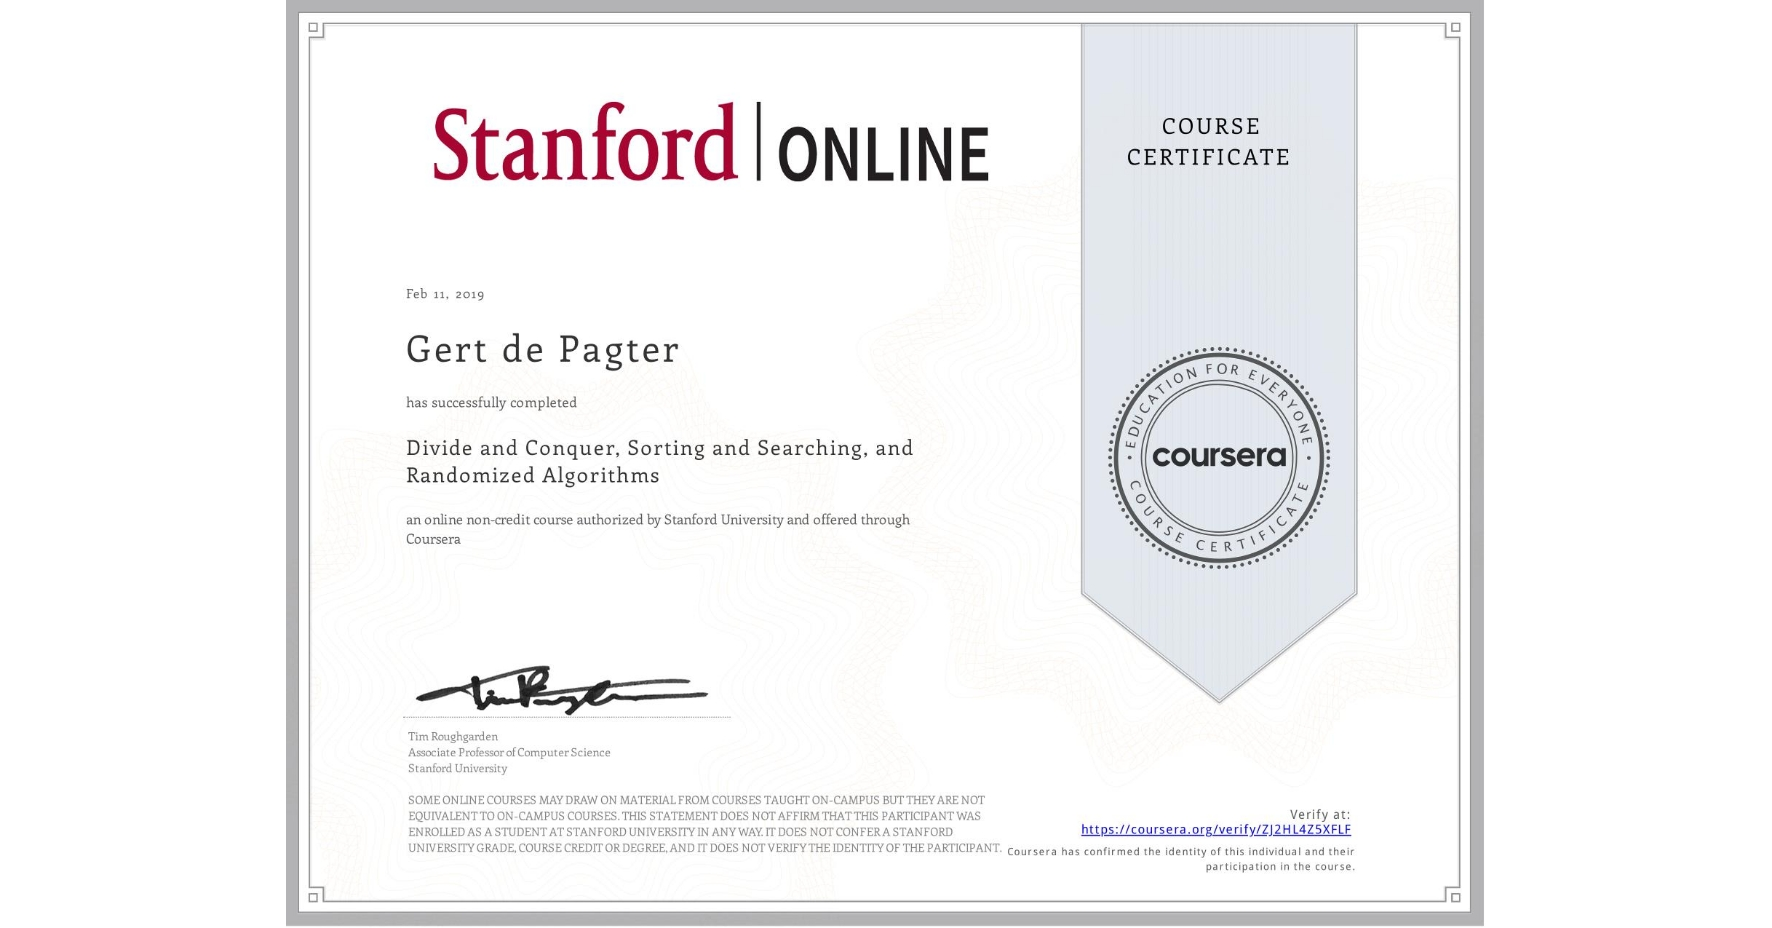 View certificate for Gert de Pagter, Divide and Conquer, Sorting and Searching, and Randomized Algorithms, an online non-credit course authorized by Stanford University and offered through Coursera